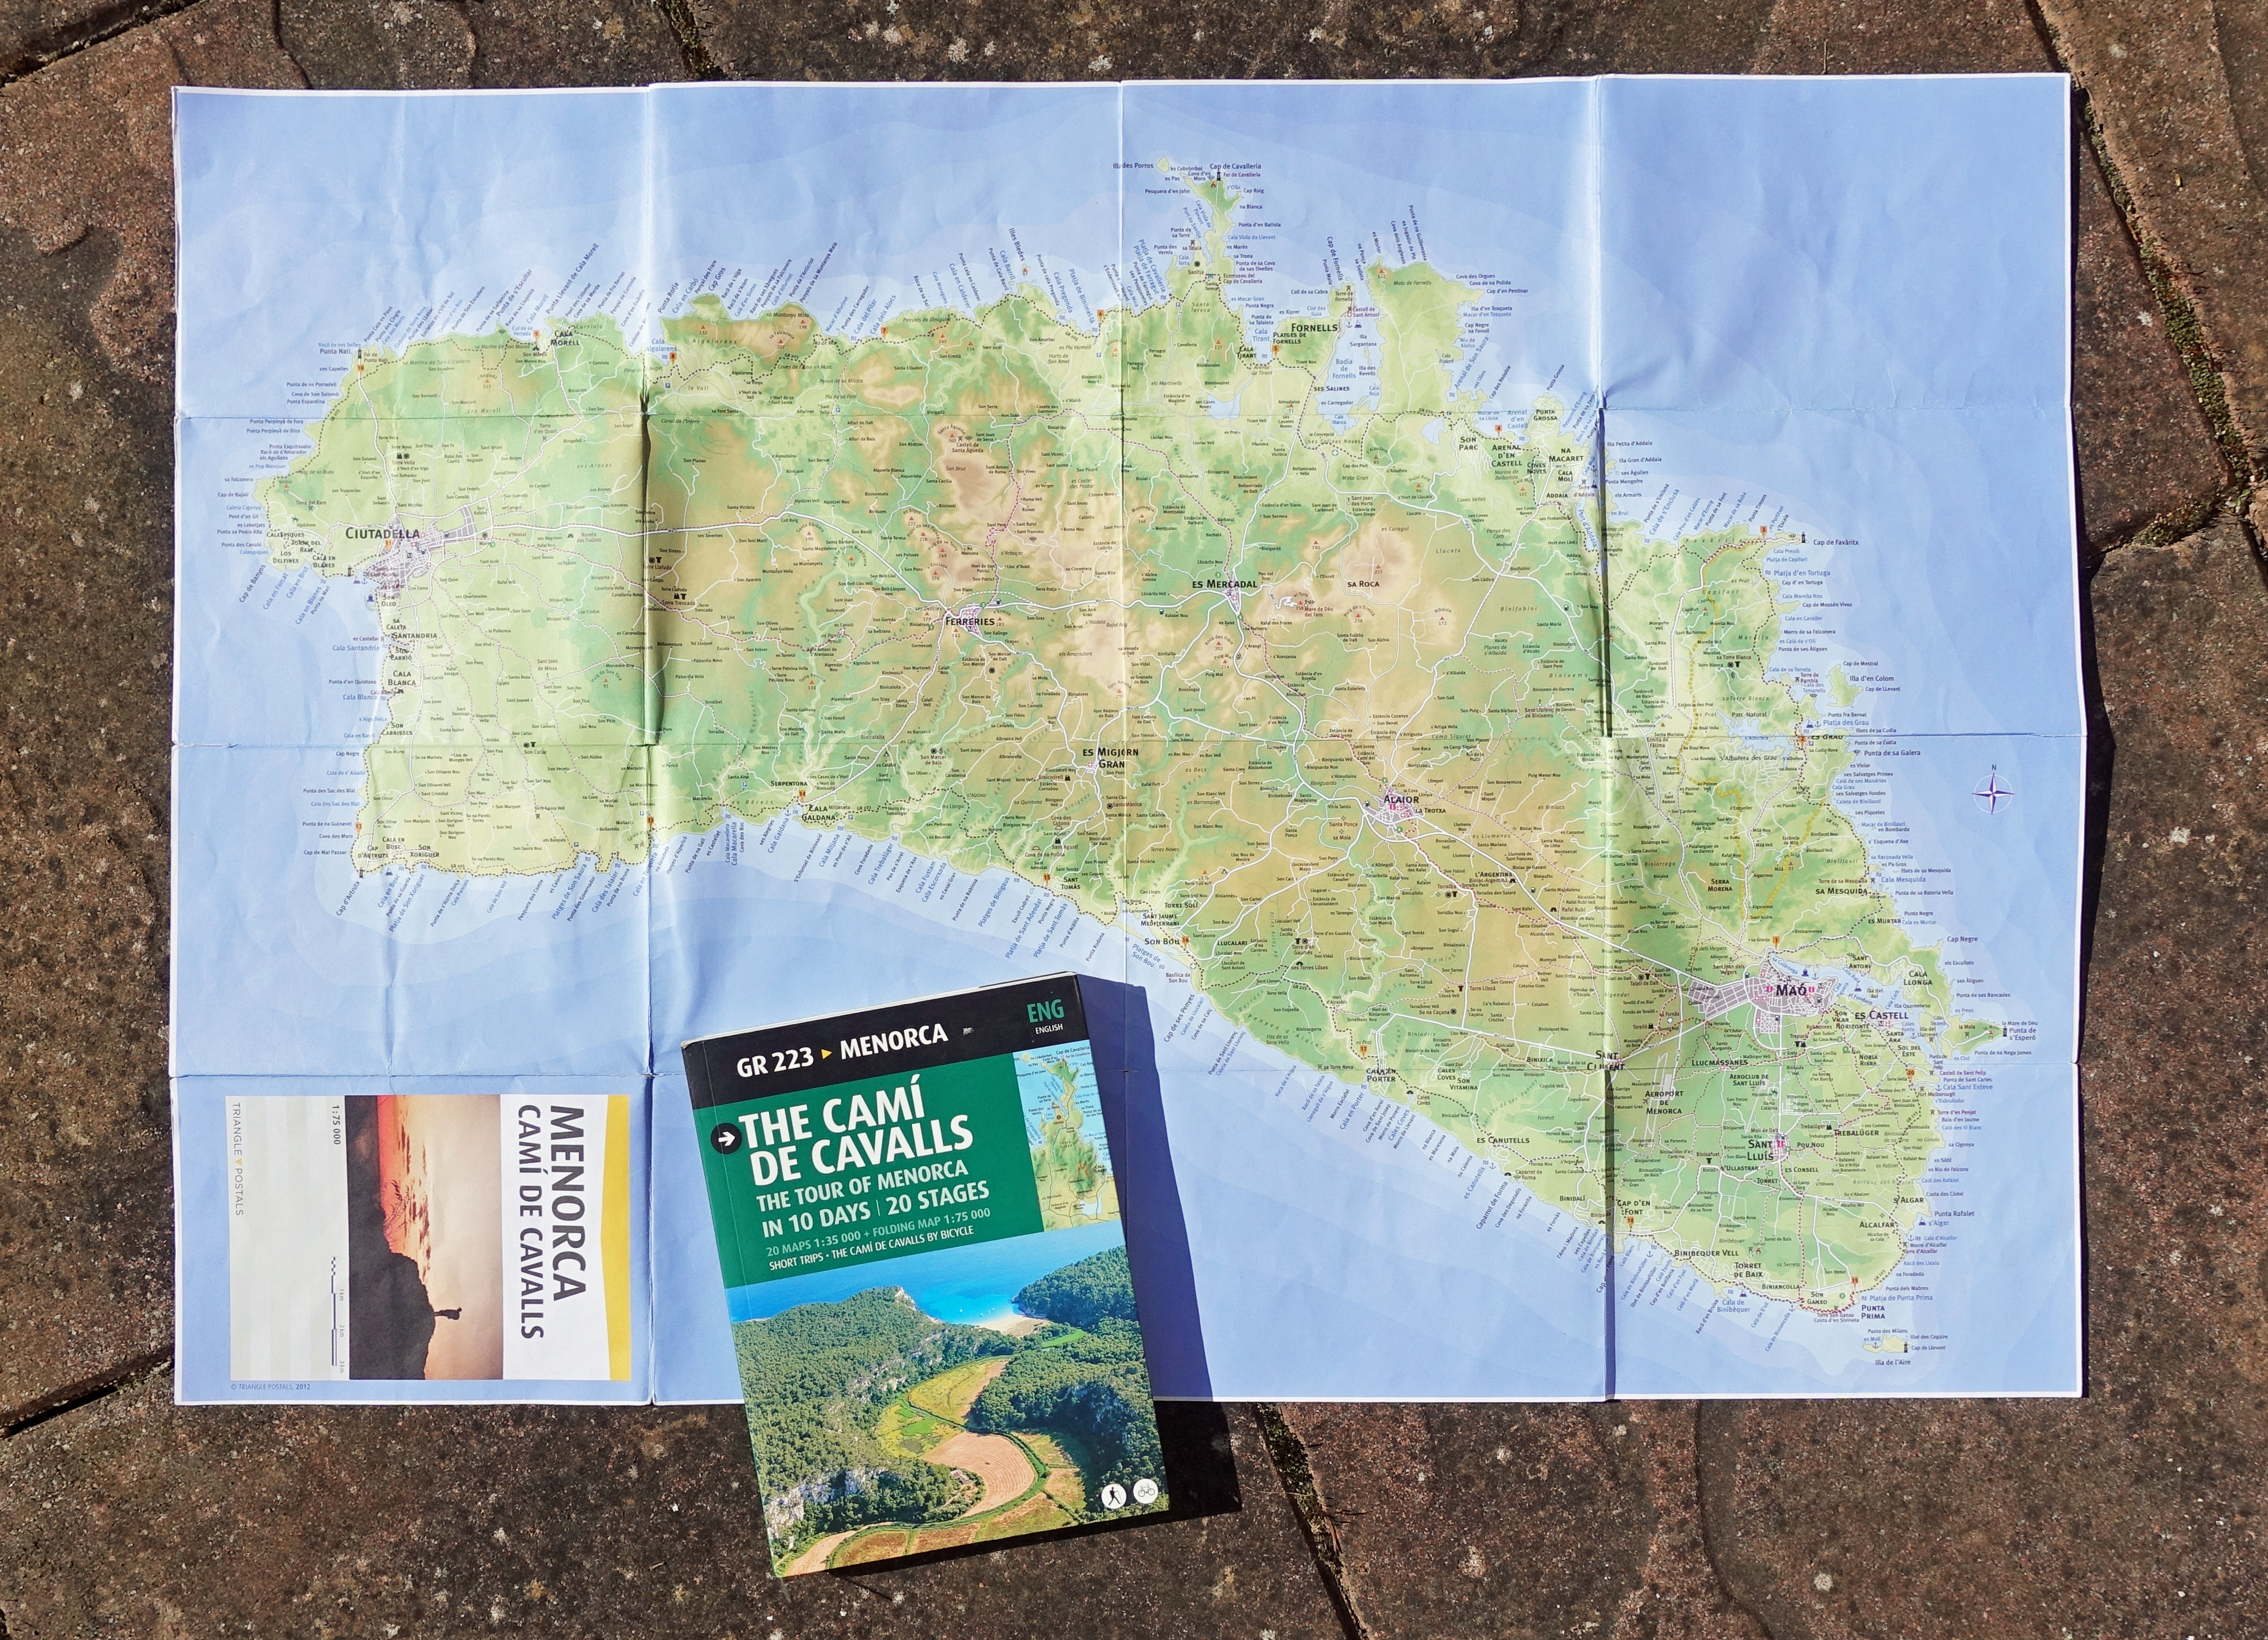 Triangle Postals guide book and map to the GR223. also published in Catalan, Spanish, Italian, French and German